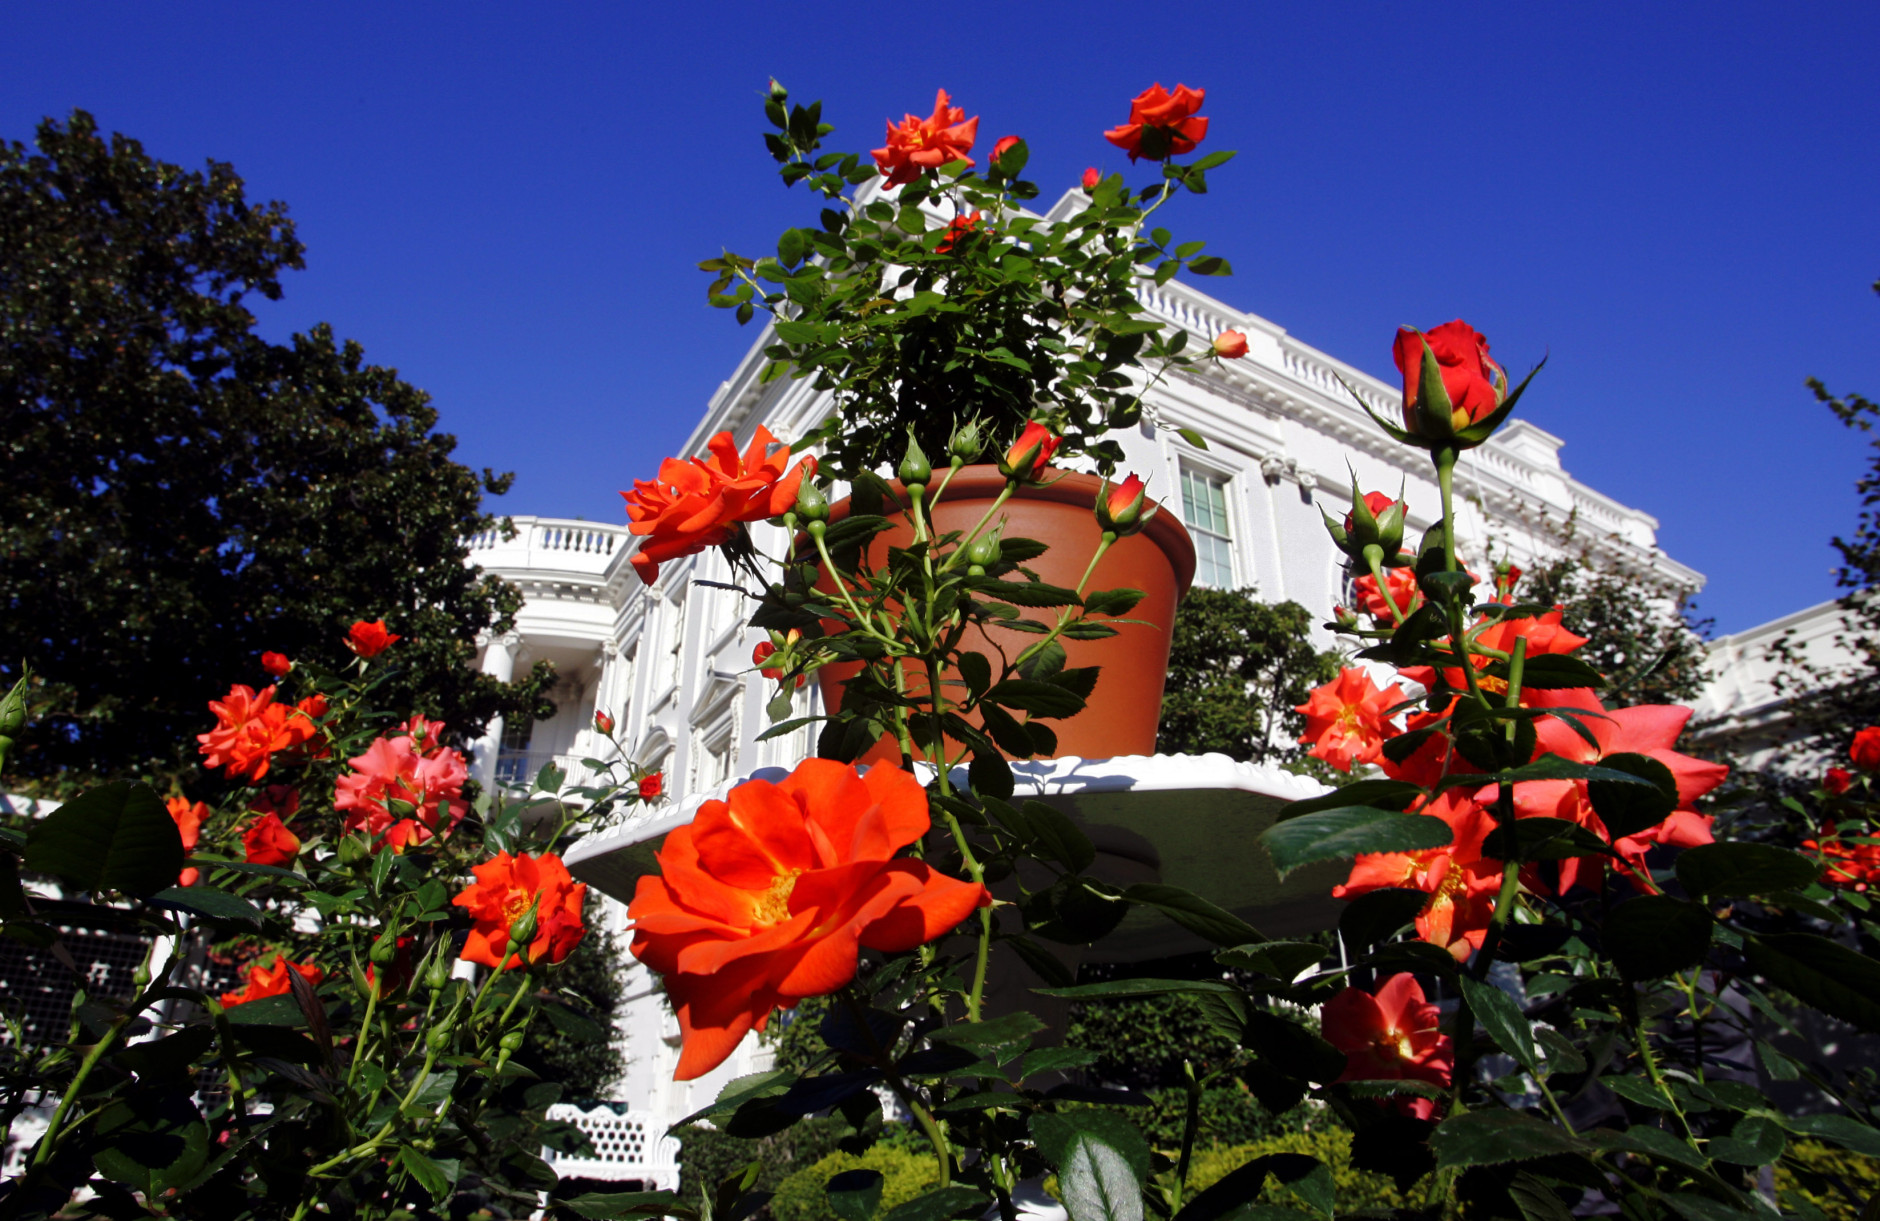 The Laura Bush Rose, a new hybrid named in honor of first lady Laura Bush, is displayed in the First Lady's Garden at the White House in Washington, Monday, Oct. 2, 2006. The rose was developed by Jackson & Perkins in Wasco, Calif., and Medford, Ore., which is owned by the gourmet gift catalog company Harry and David. (AP Photo/J. Scott Applewhite)